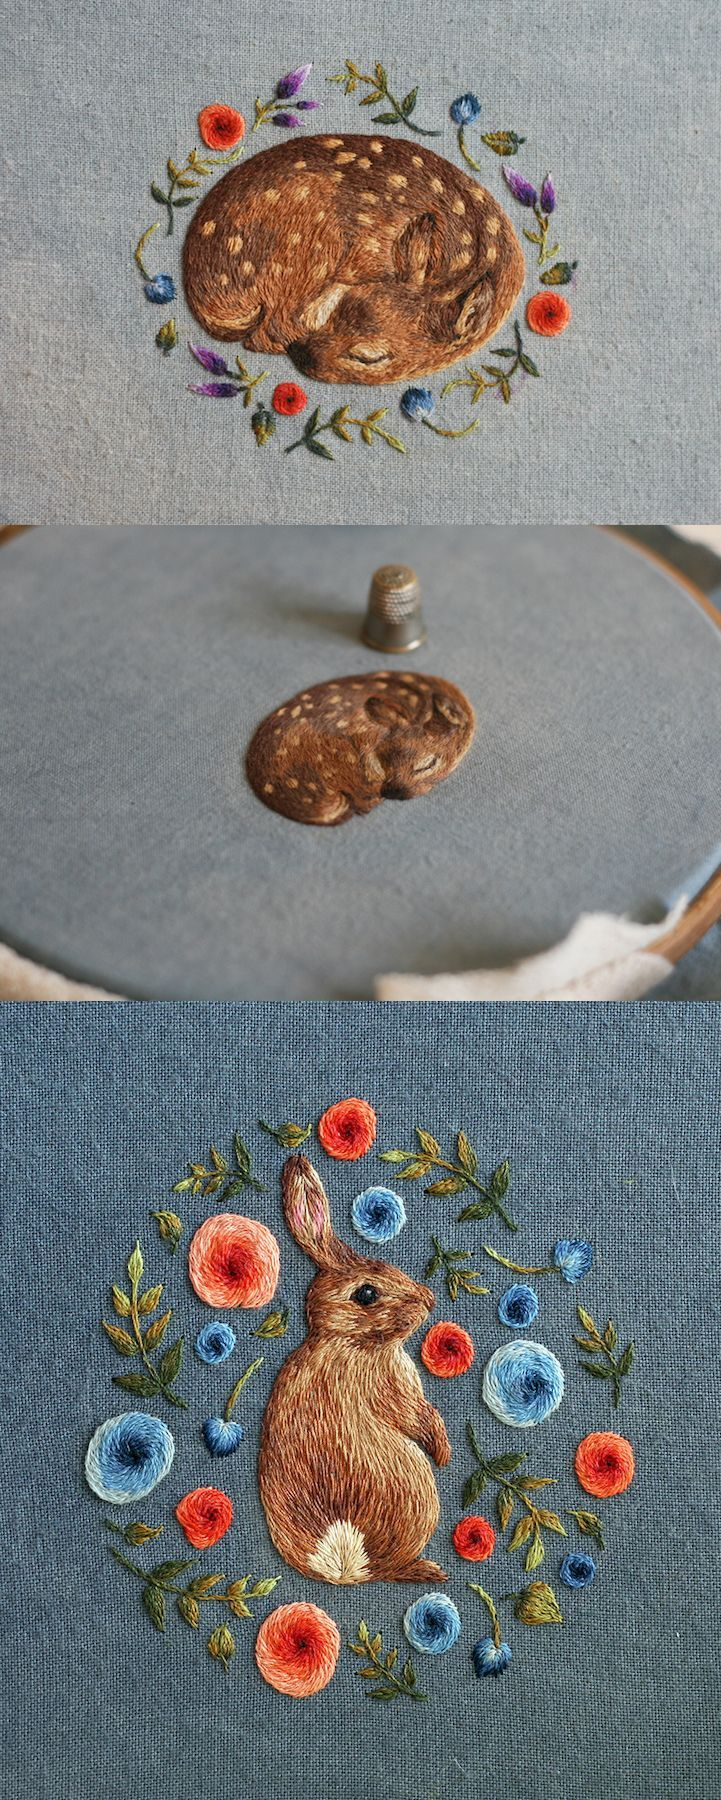 Miniature embroidery by Chloe Giordano | animal embroidery | modern embroidery | realistic embroidery